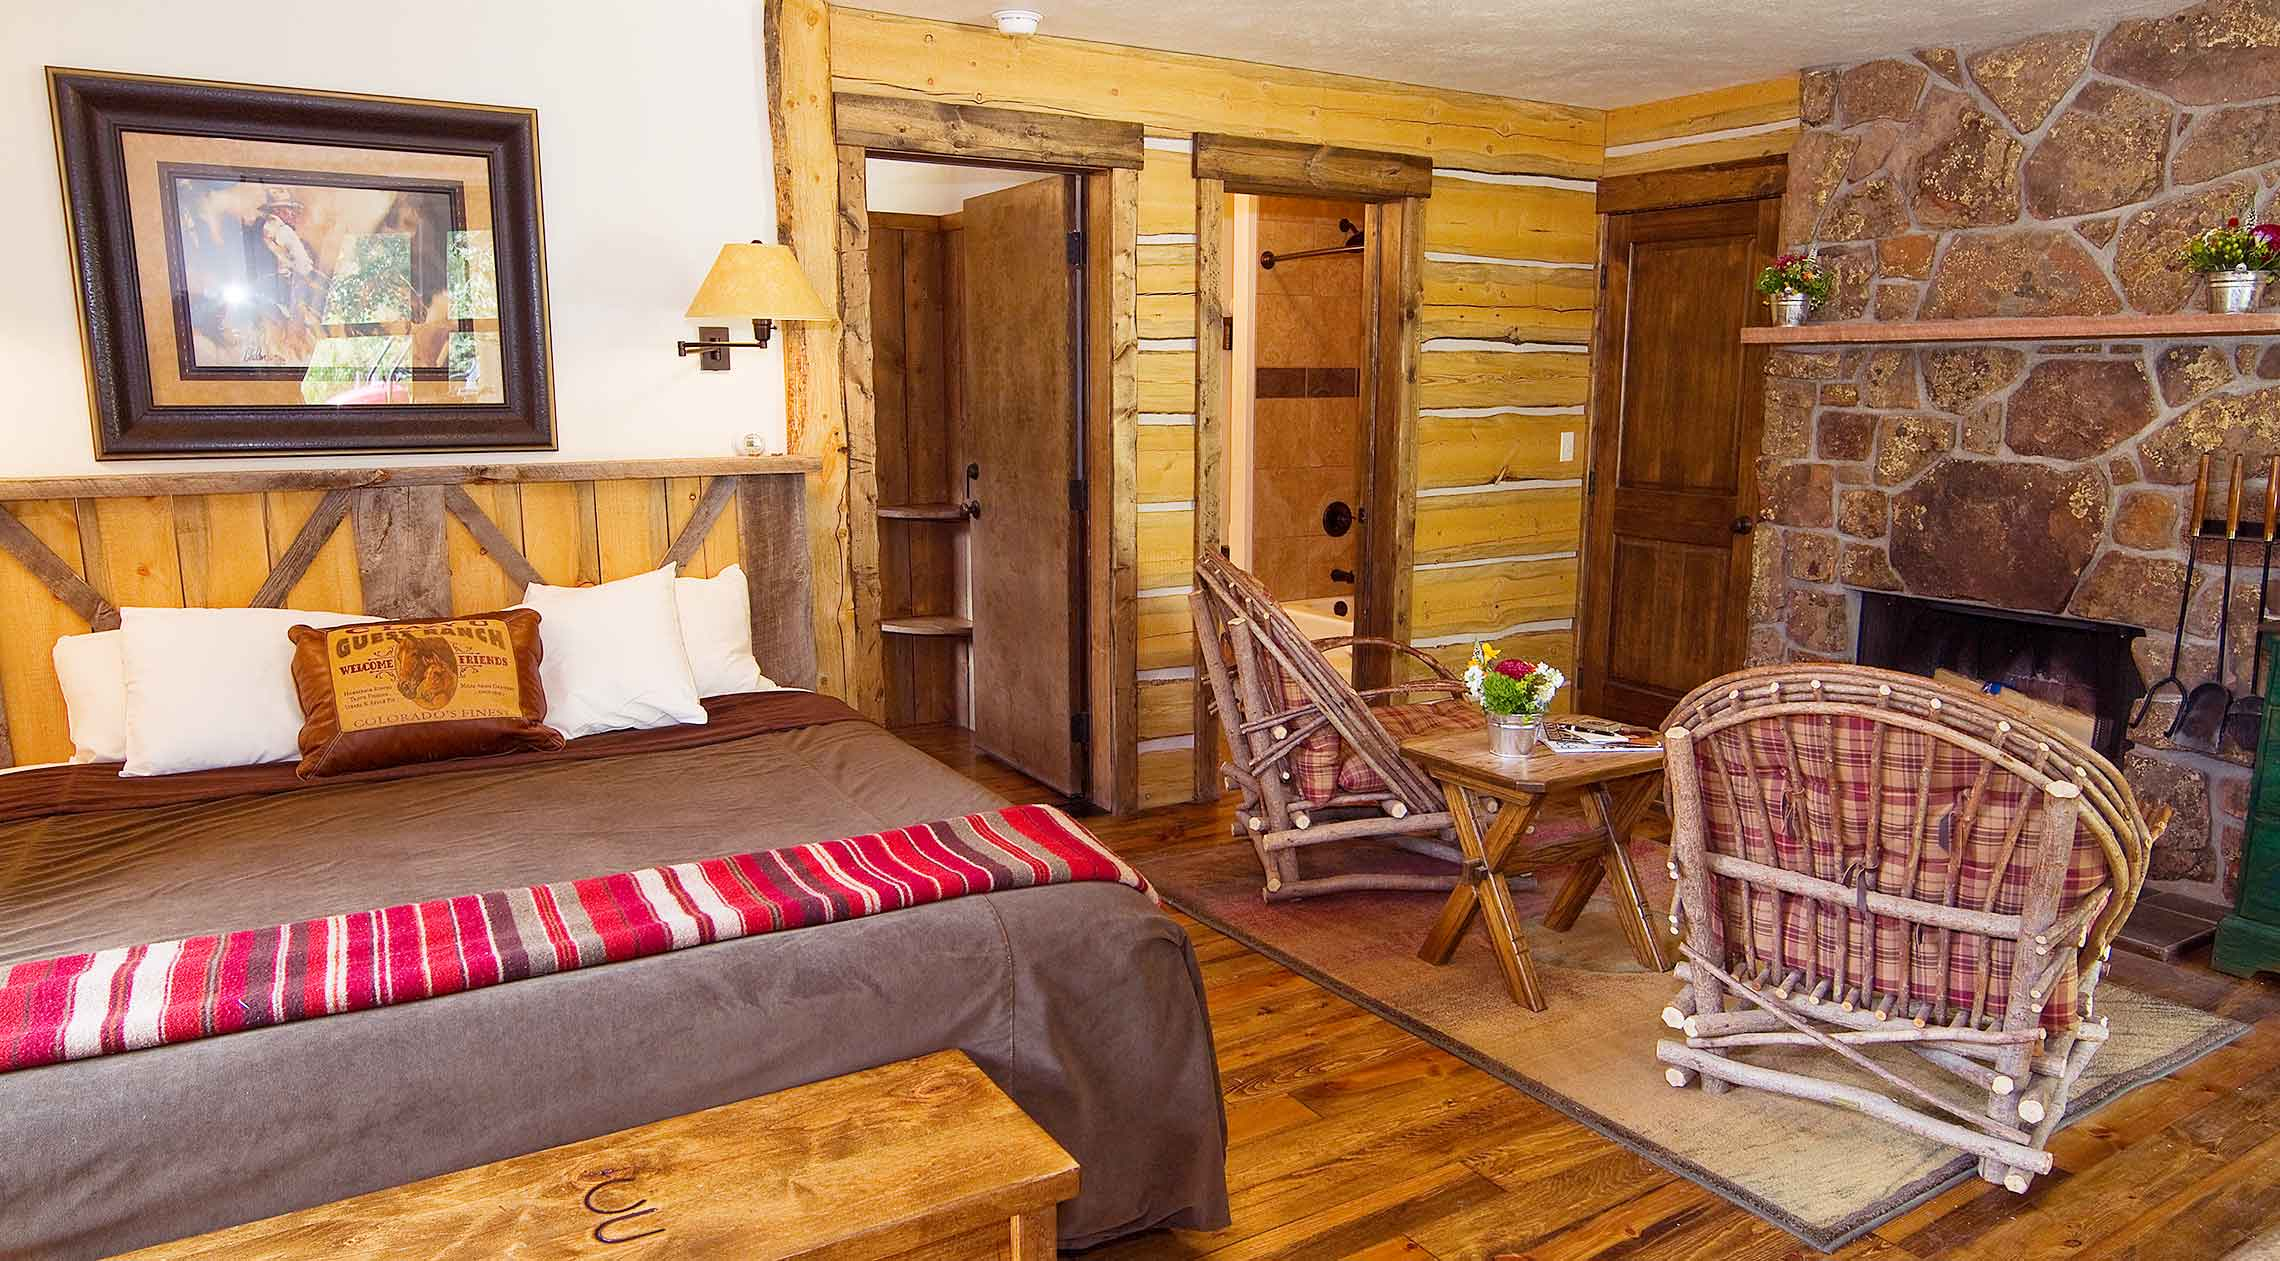 sunset cabin accommodations lodging at c lazy u guest ranch